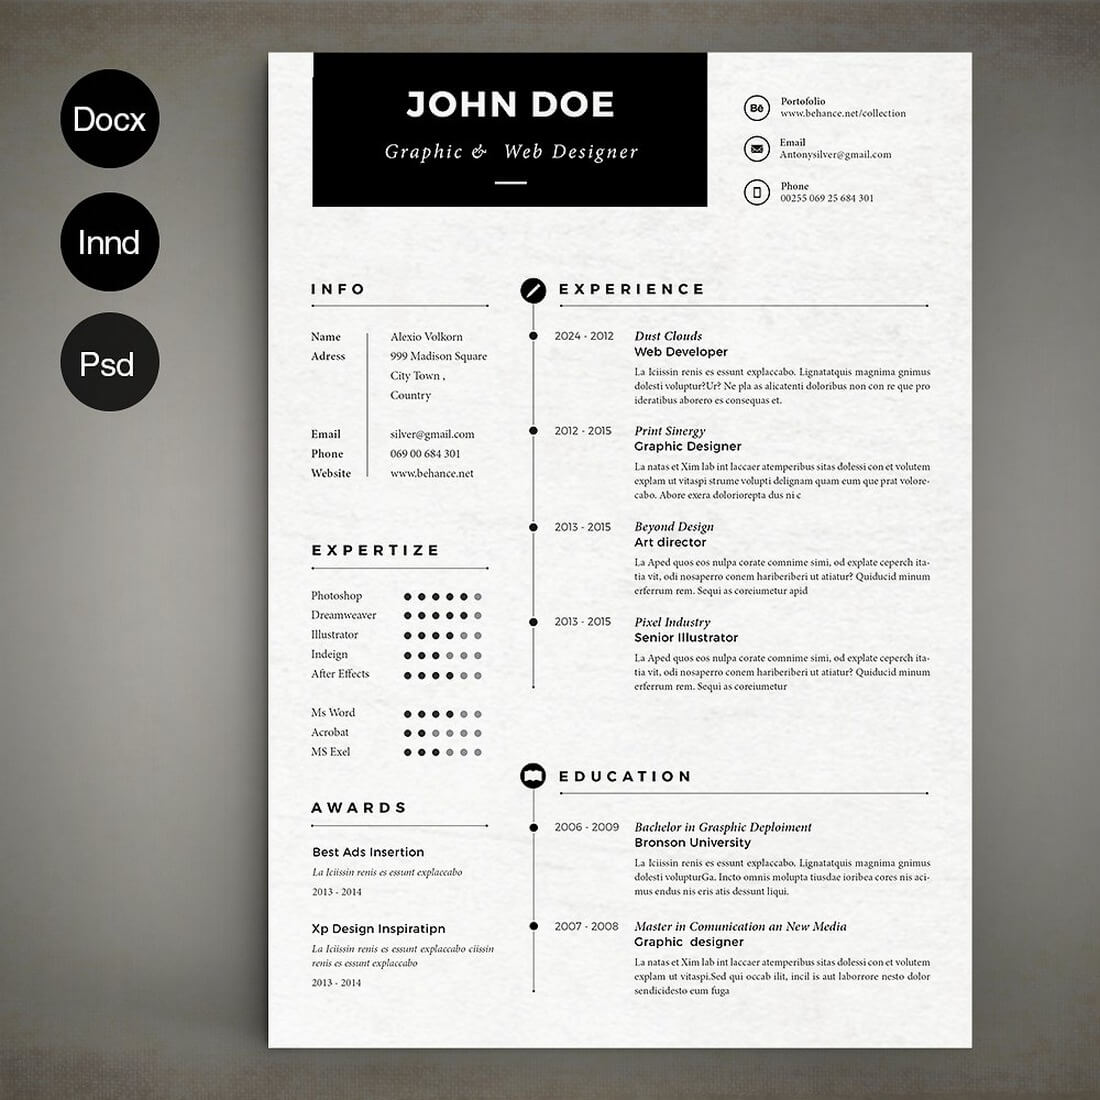 Lovely 1 Page Resume Format Download Thick 1 Page Resume Or 2 Regular 1 Year Experience Java Resume Format 11x17 Graph Paper Template Young 15 Year Old Funny Resume Blue15 Year Old Student Resume The Best CV \u0026 Resume Templates: 50 Examples \u2013 Ok Huge